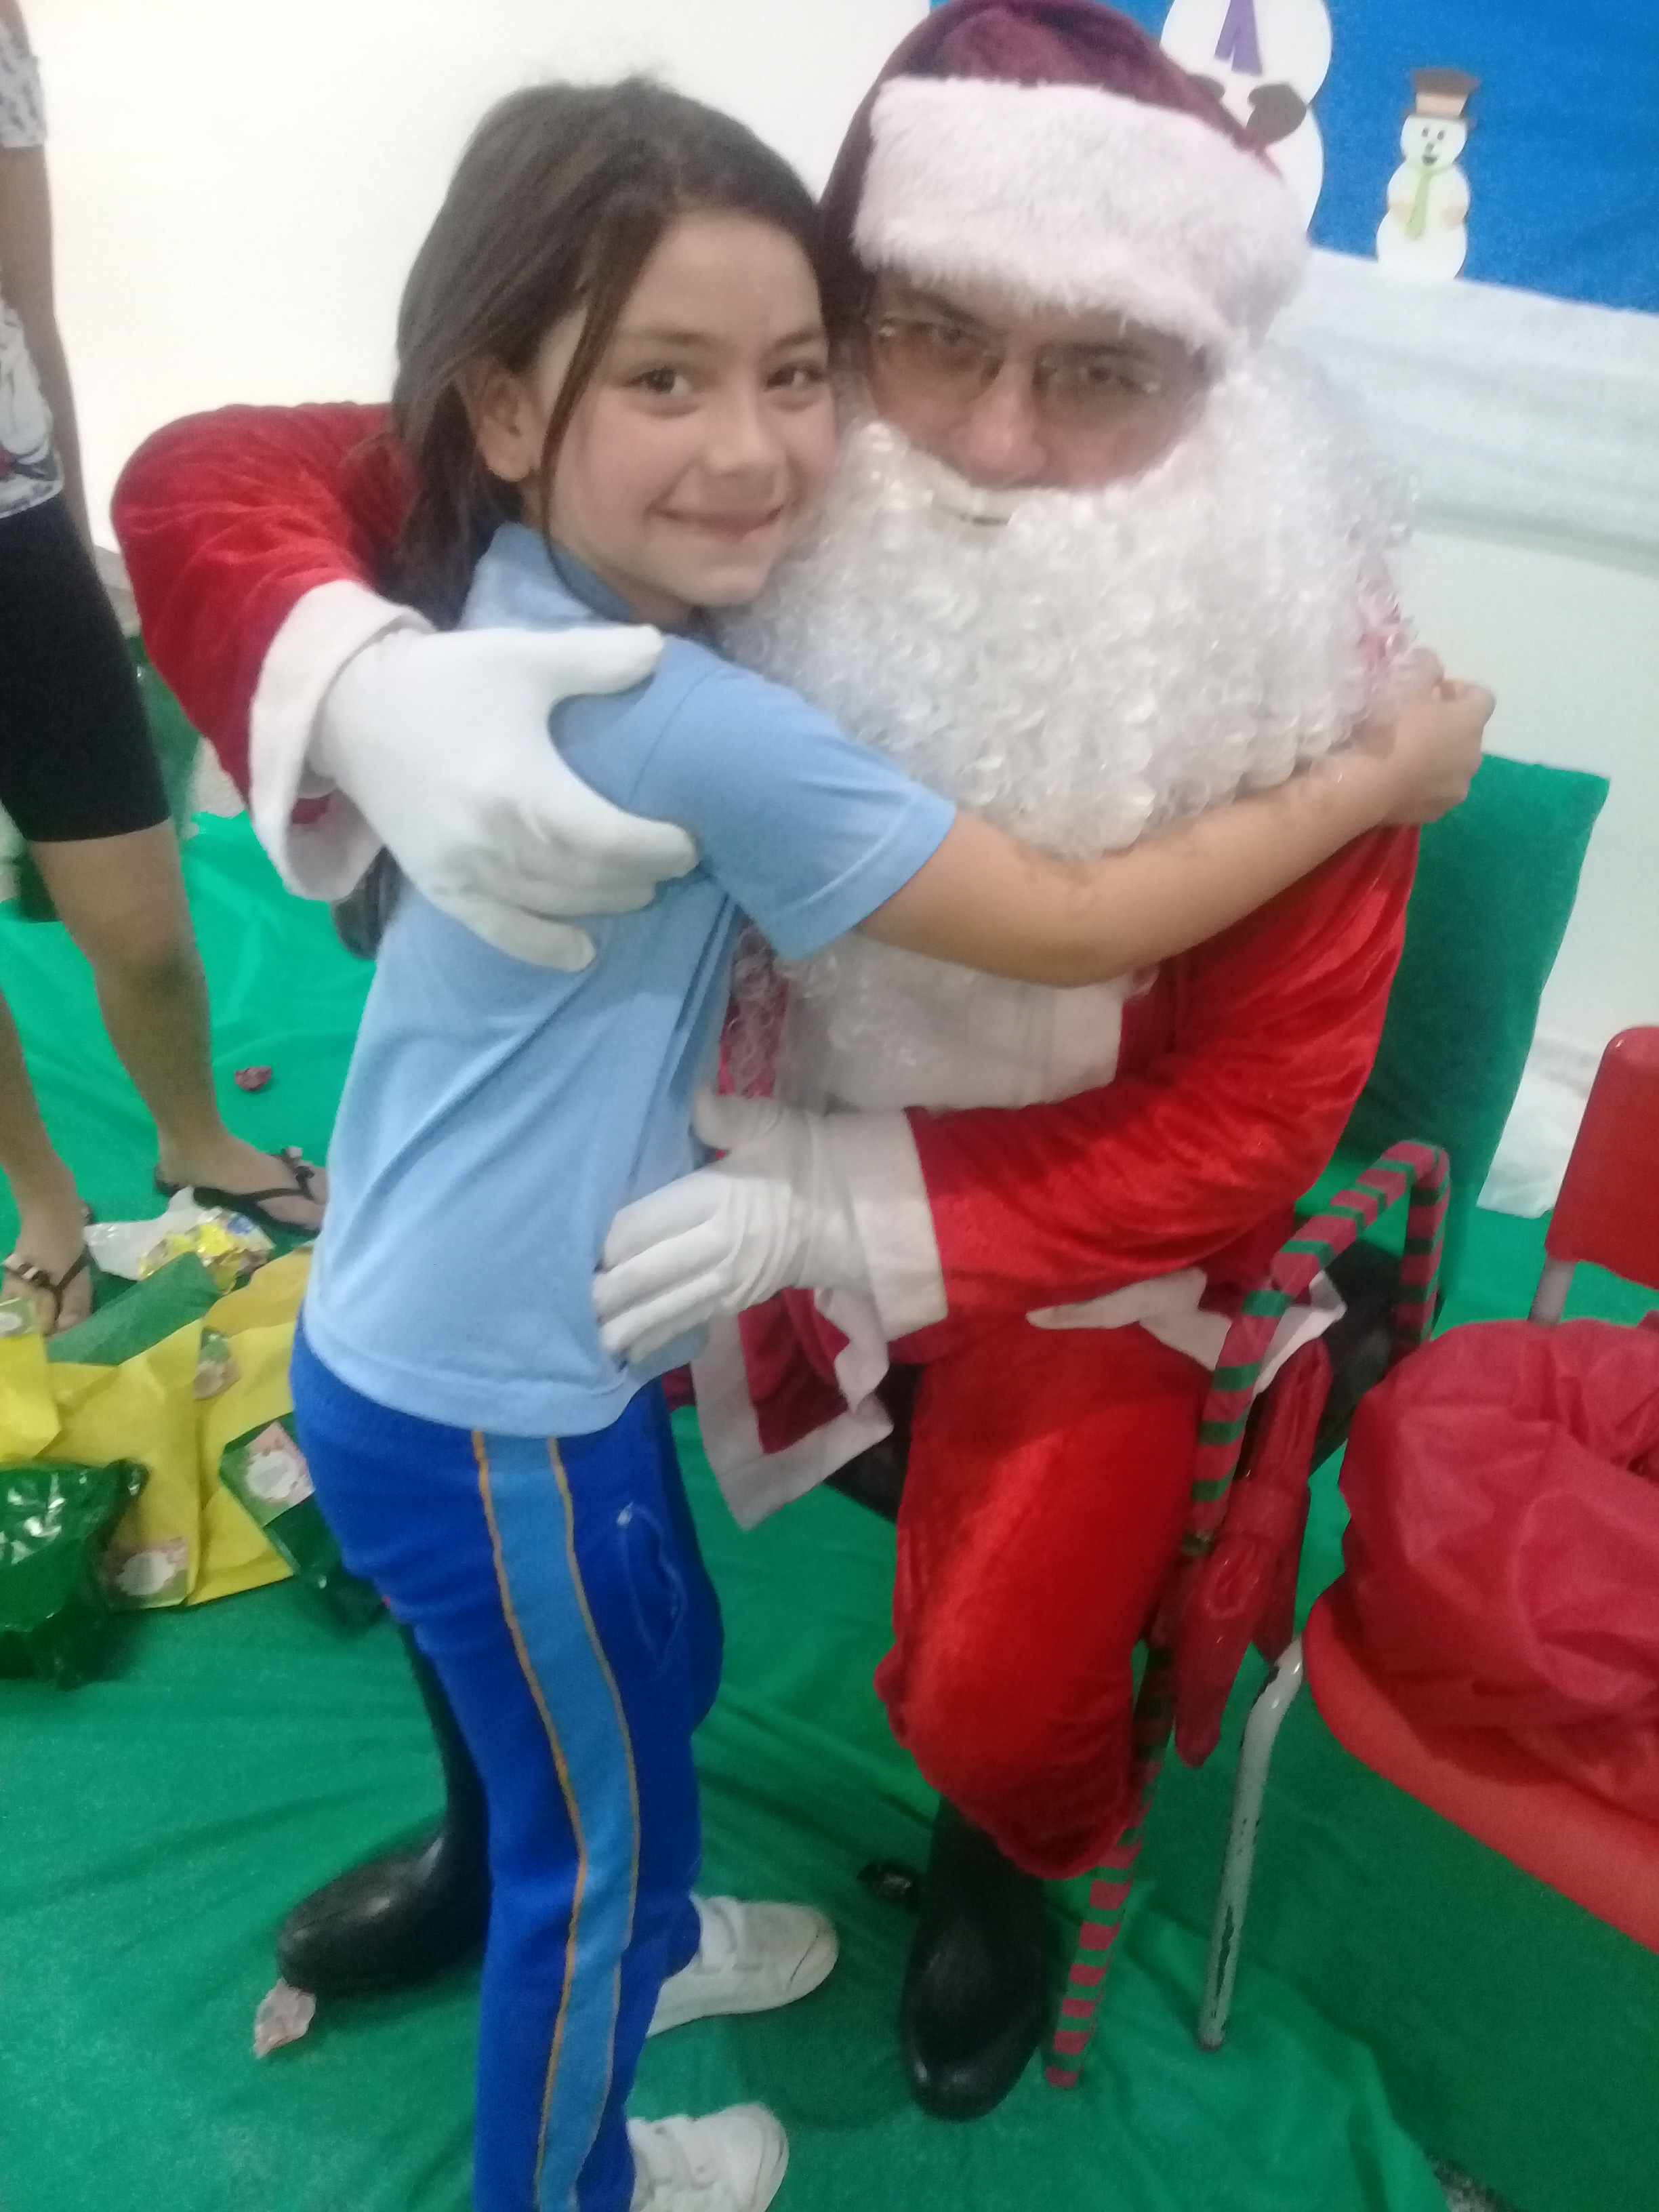 Visita do Papai Noel na escola